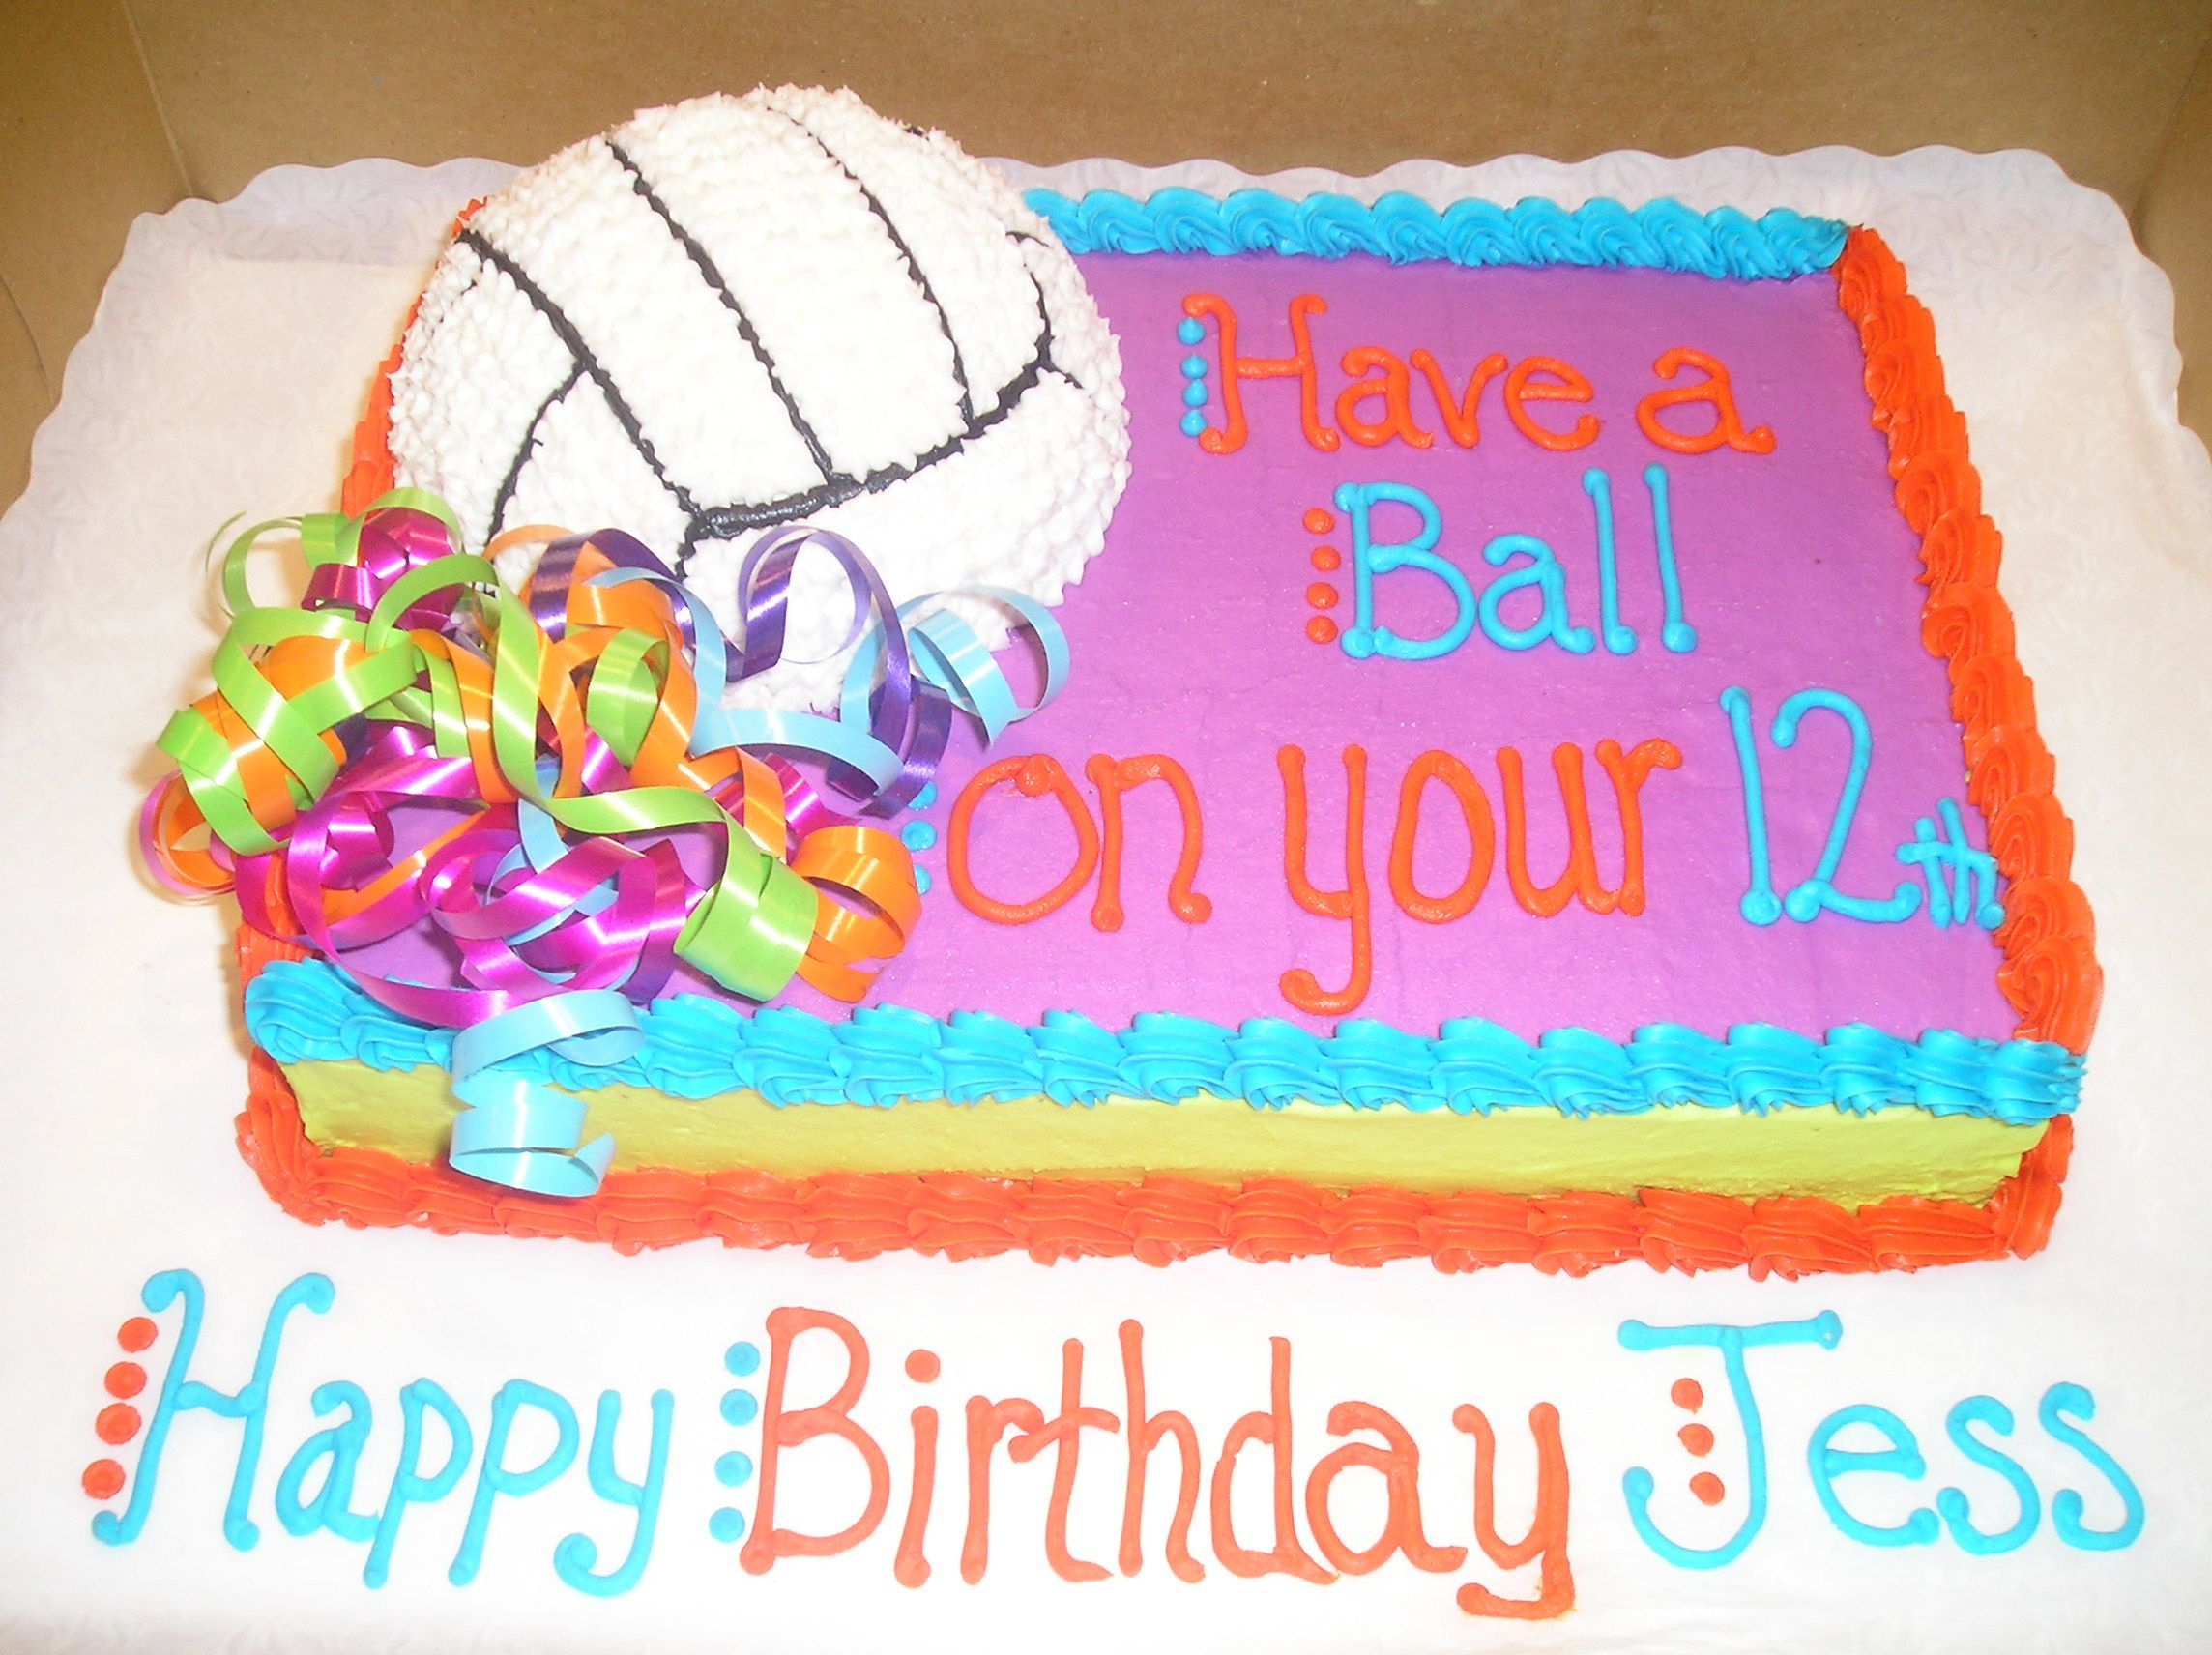 I AM getting this cake no matter what! NEED A VOLLEYBALL CAKE NOW ...